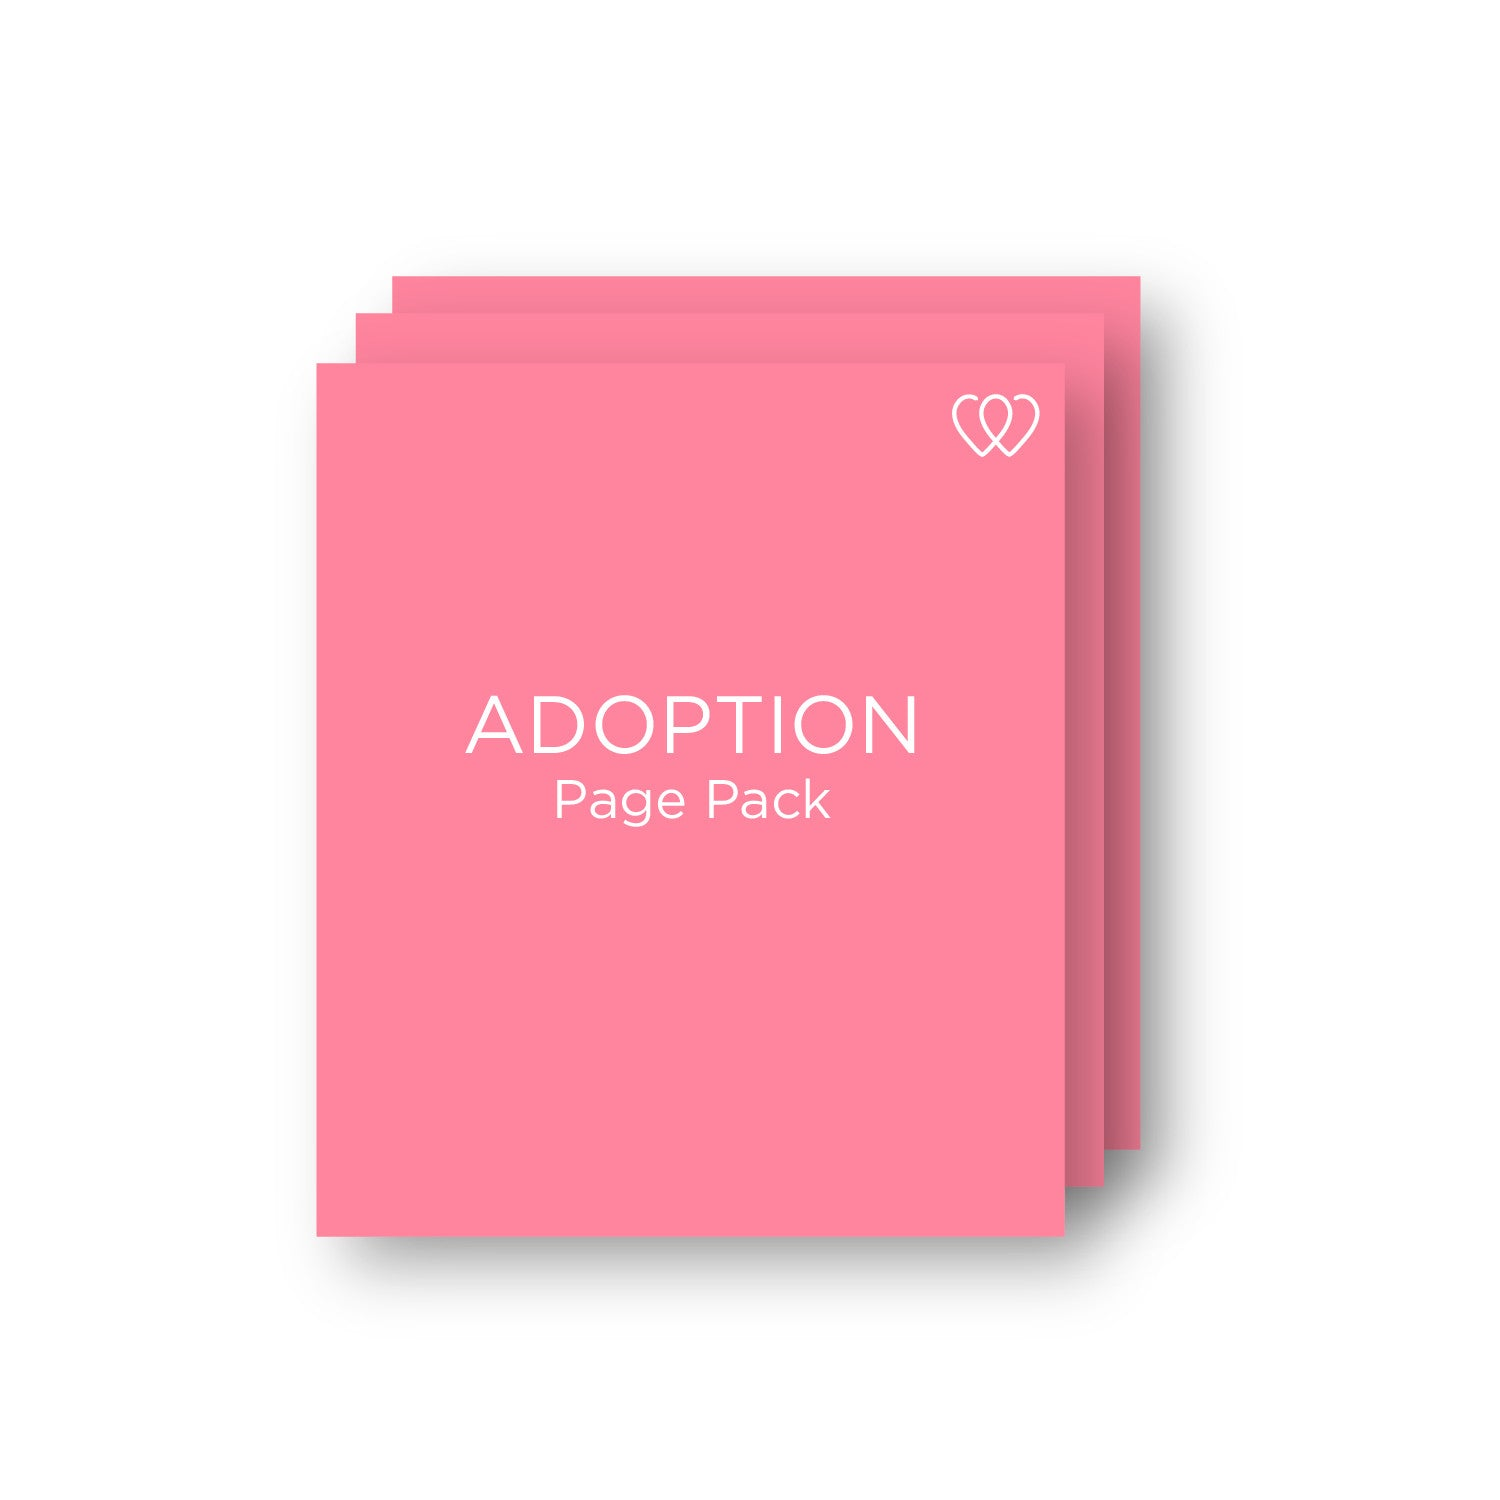 Adoption Page Pack